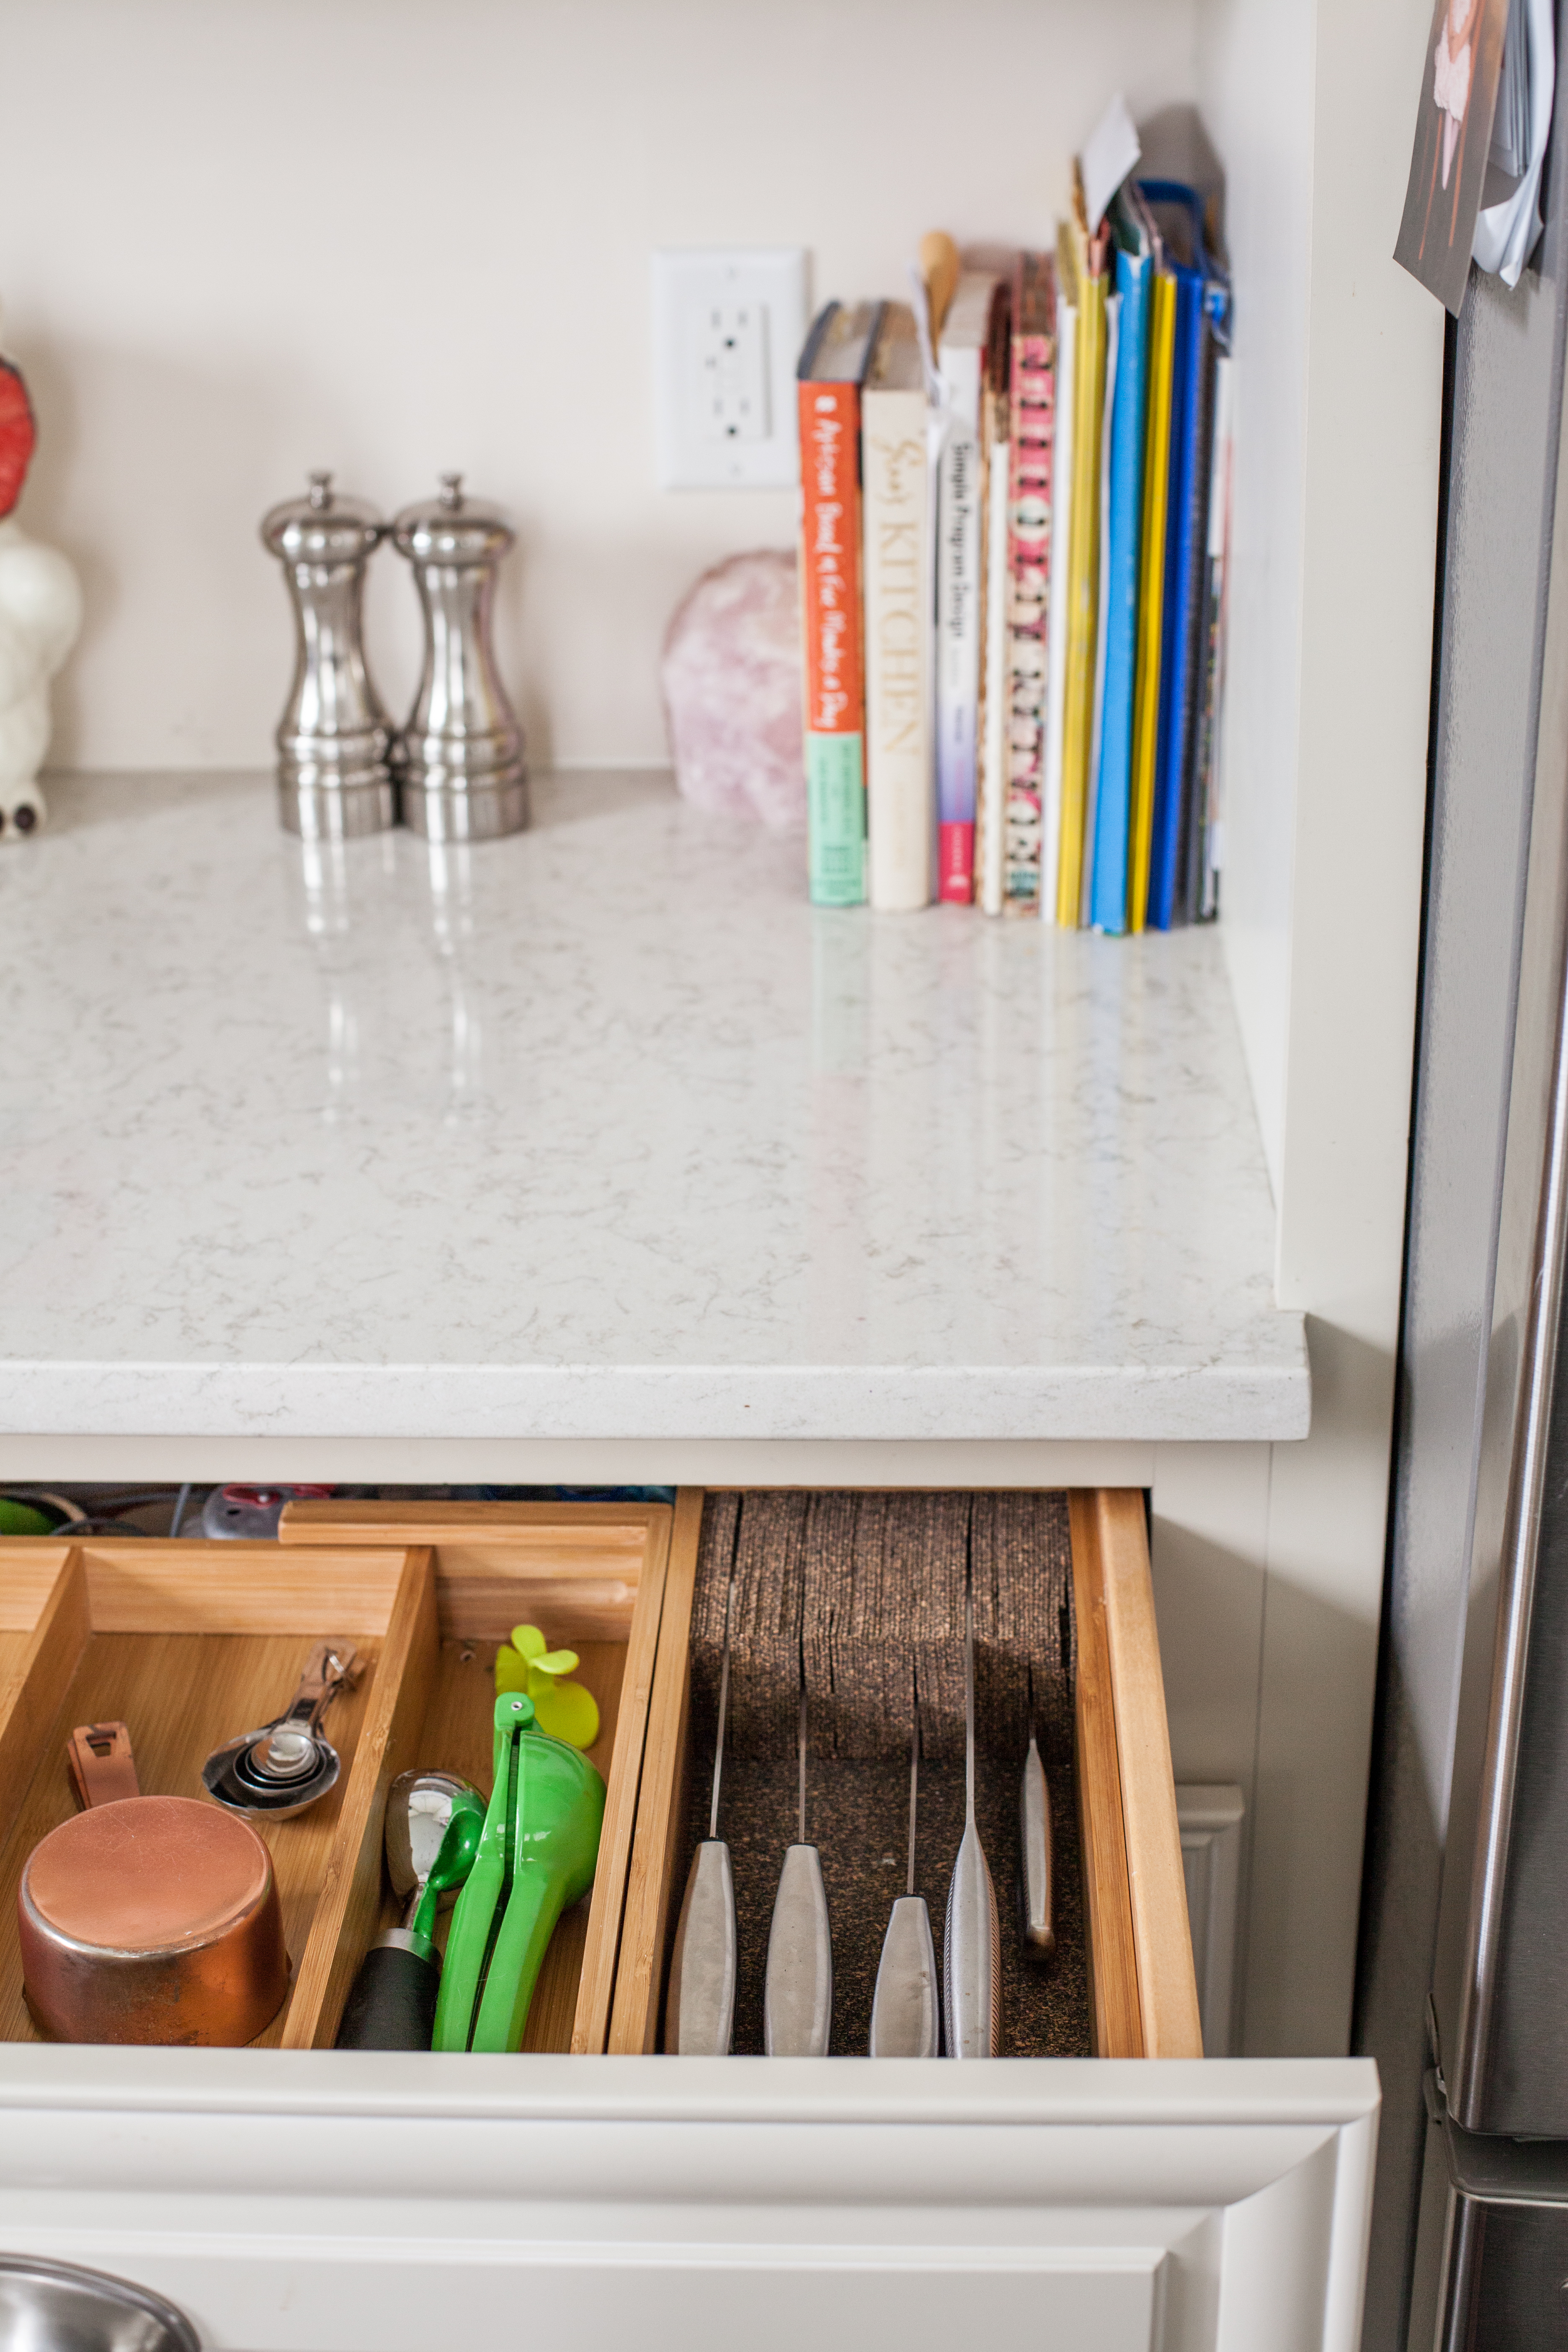 The Most Important Thing to Know About Storing Your Knife